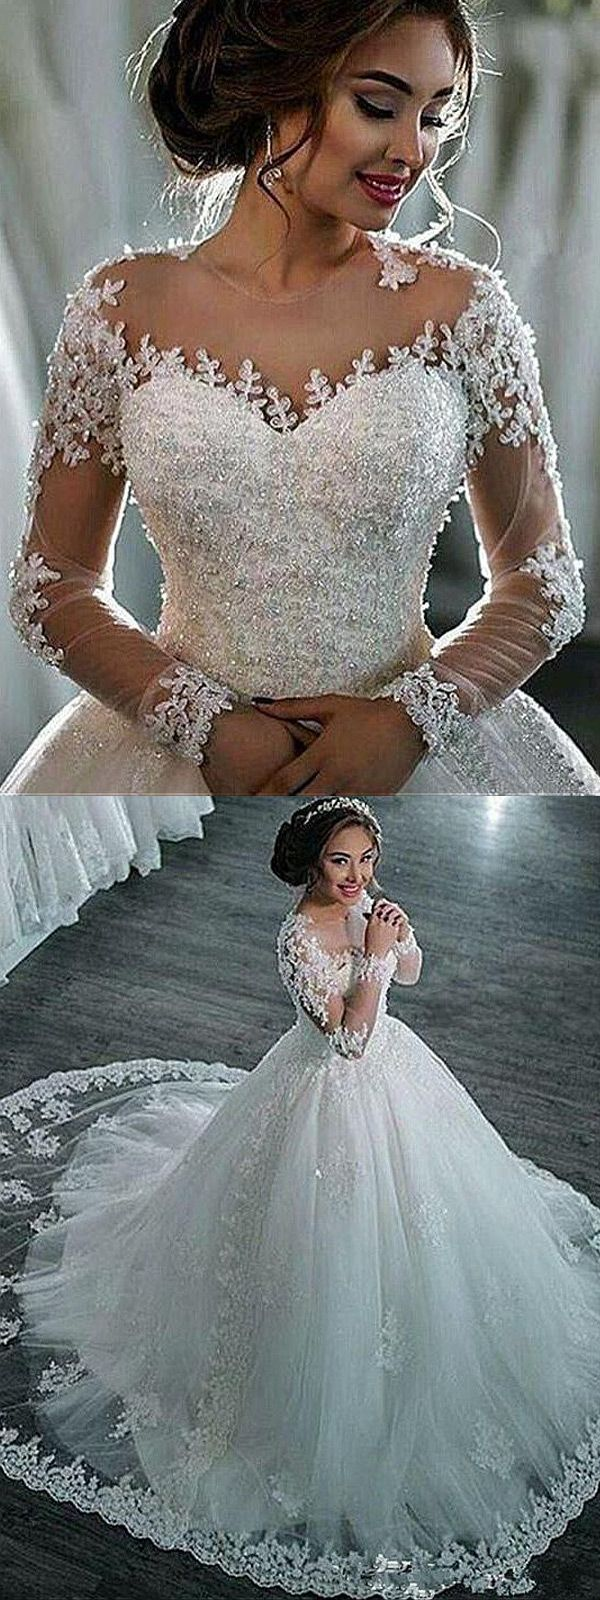 Amazing Tulle Sheer Jewel Neckline Ball Gown Wedding Dresses With Beaded Lace Appliques